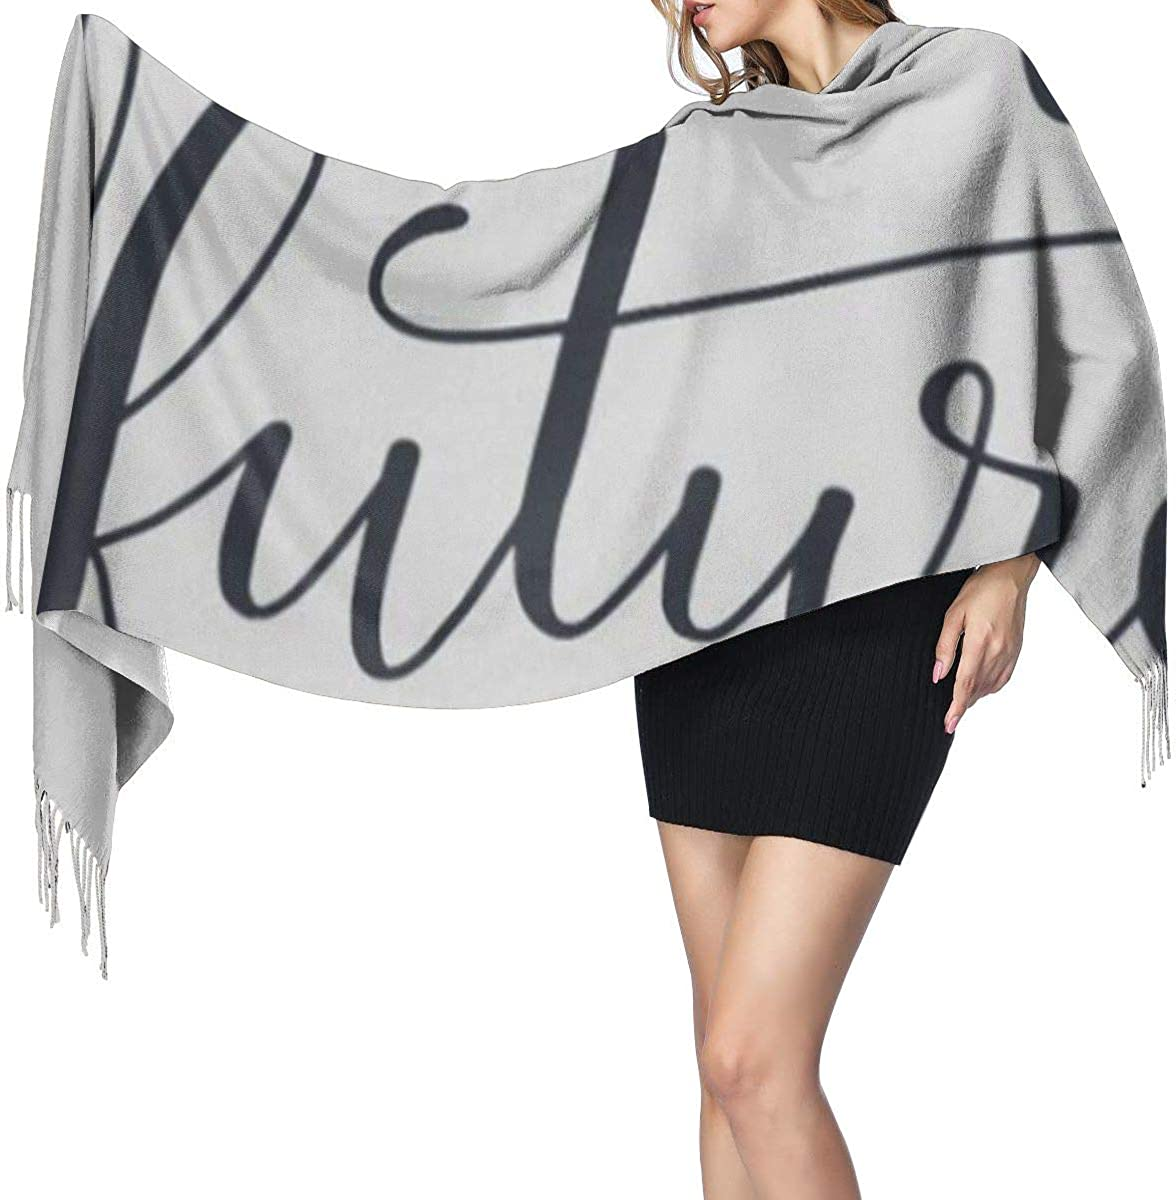 Fashion Lady Shawls,Comfortable Warm Winter Scarfs Female Femme Future Modern Brush Graphic Feminist Quote Slogan Text Soft Cashmere Scarf For Women